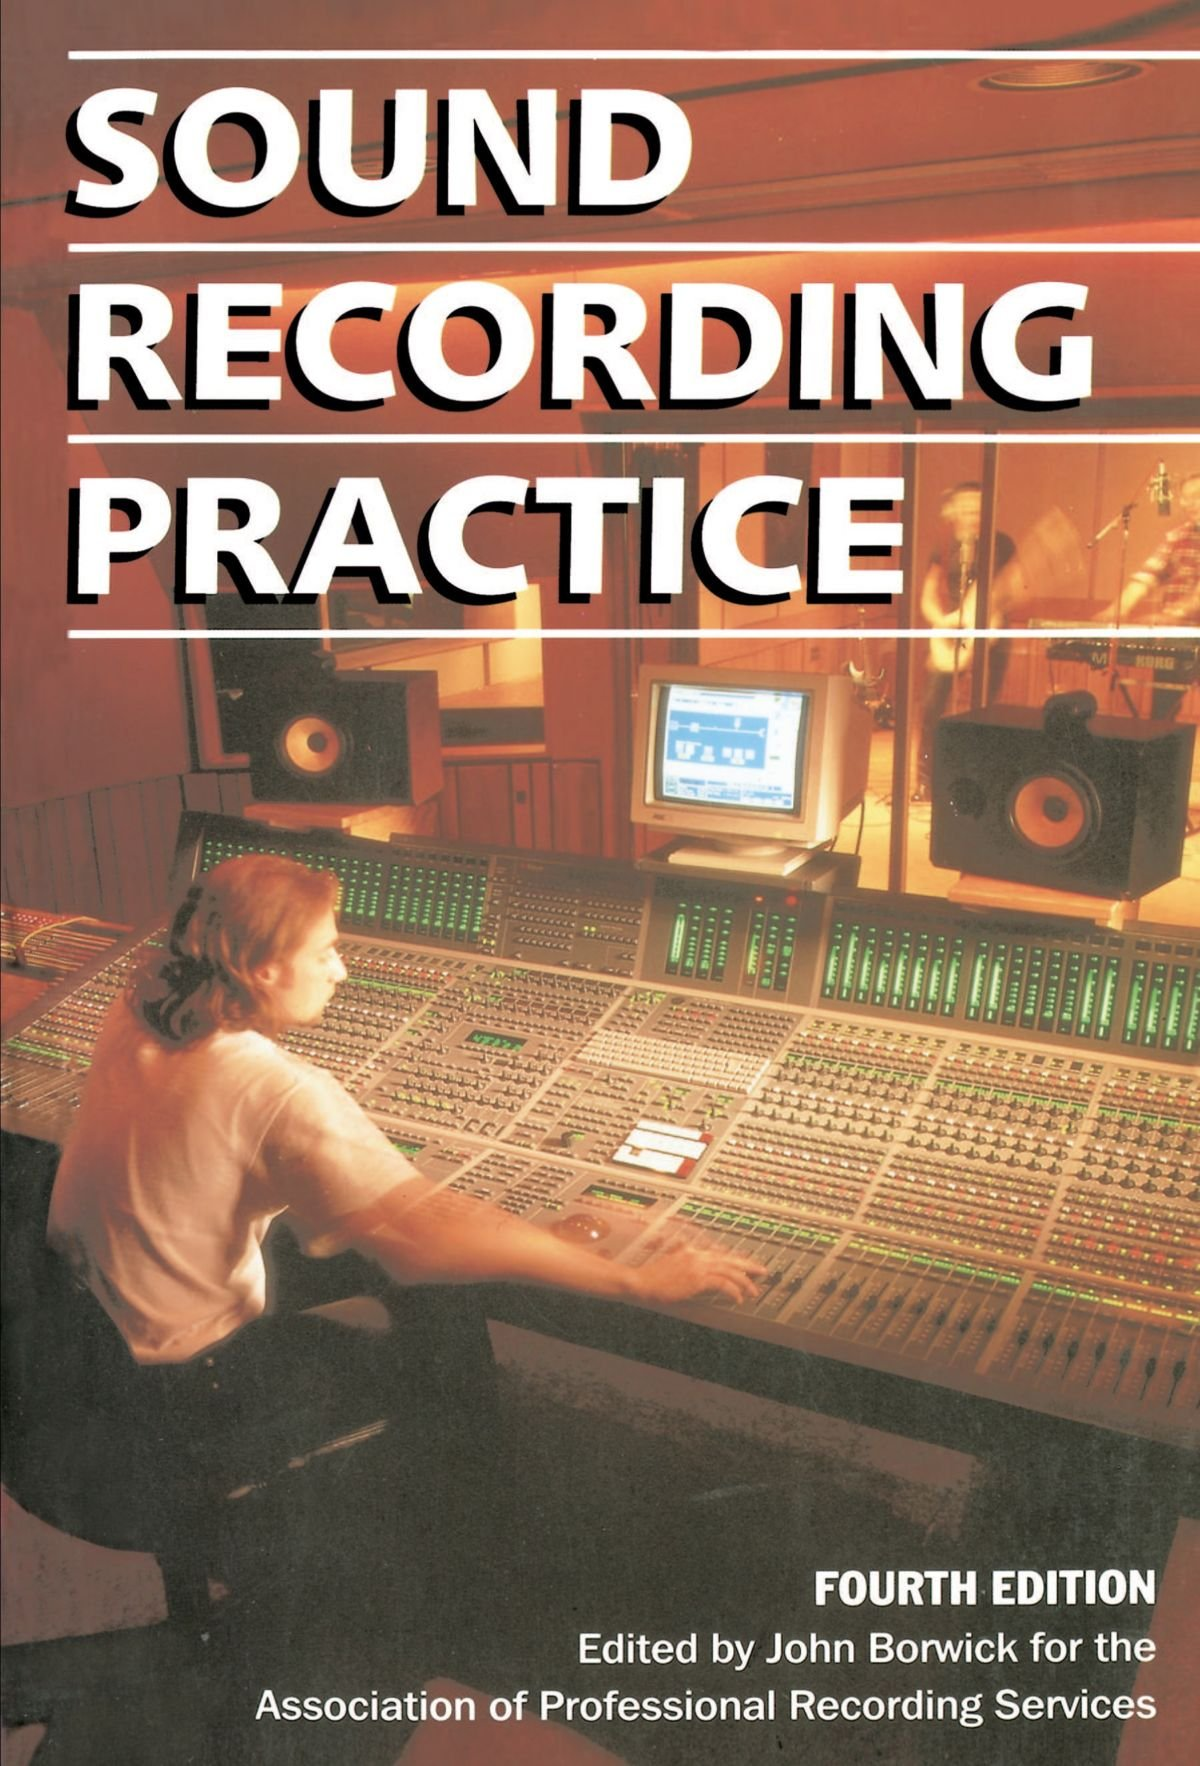 Sound Recording Practice by John Borwick